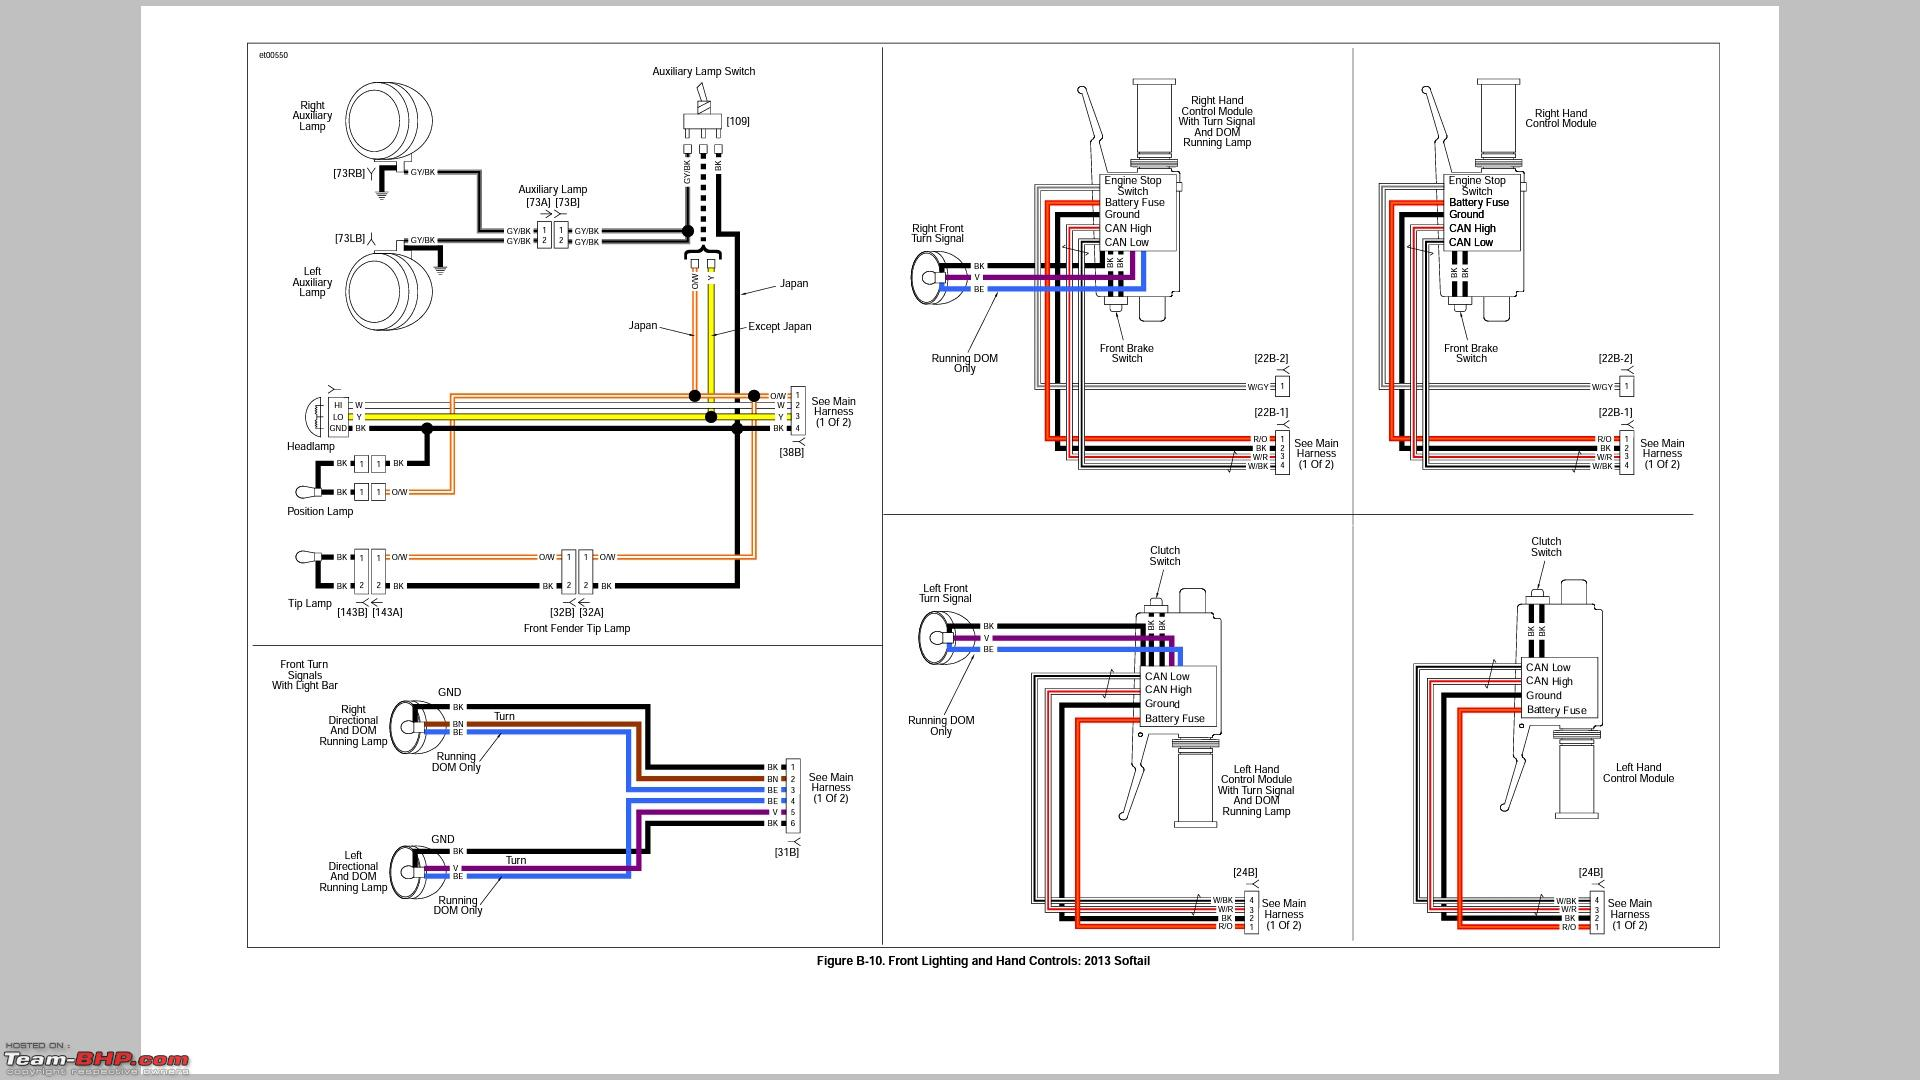 91 Flstc Wiring Diagram - Information Schematics Wiring Diagrams on